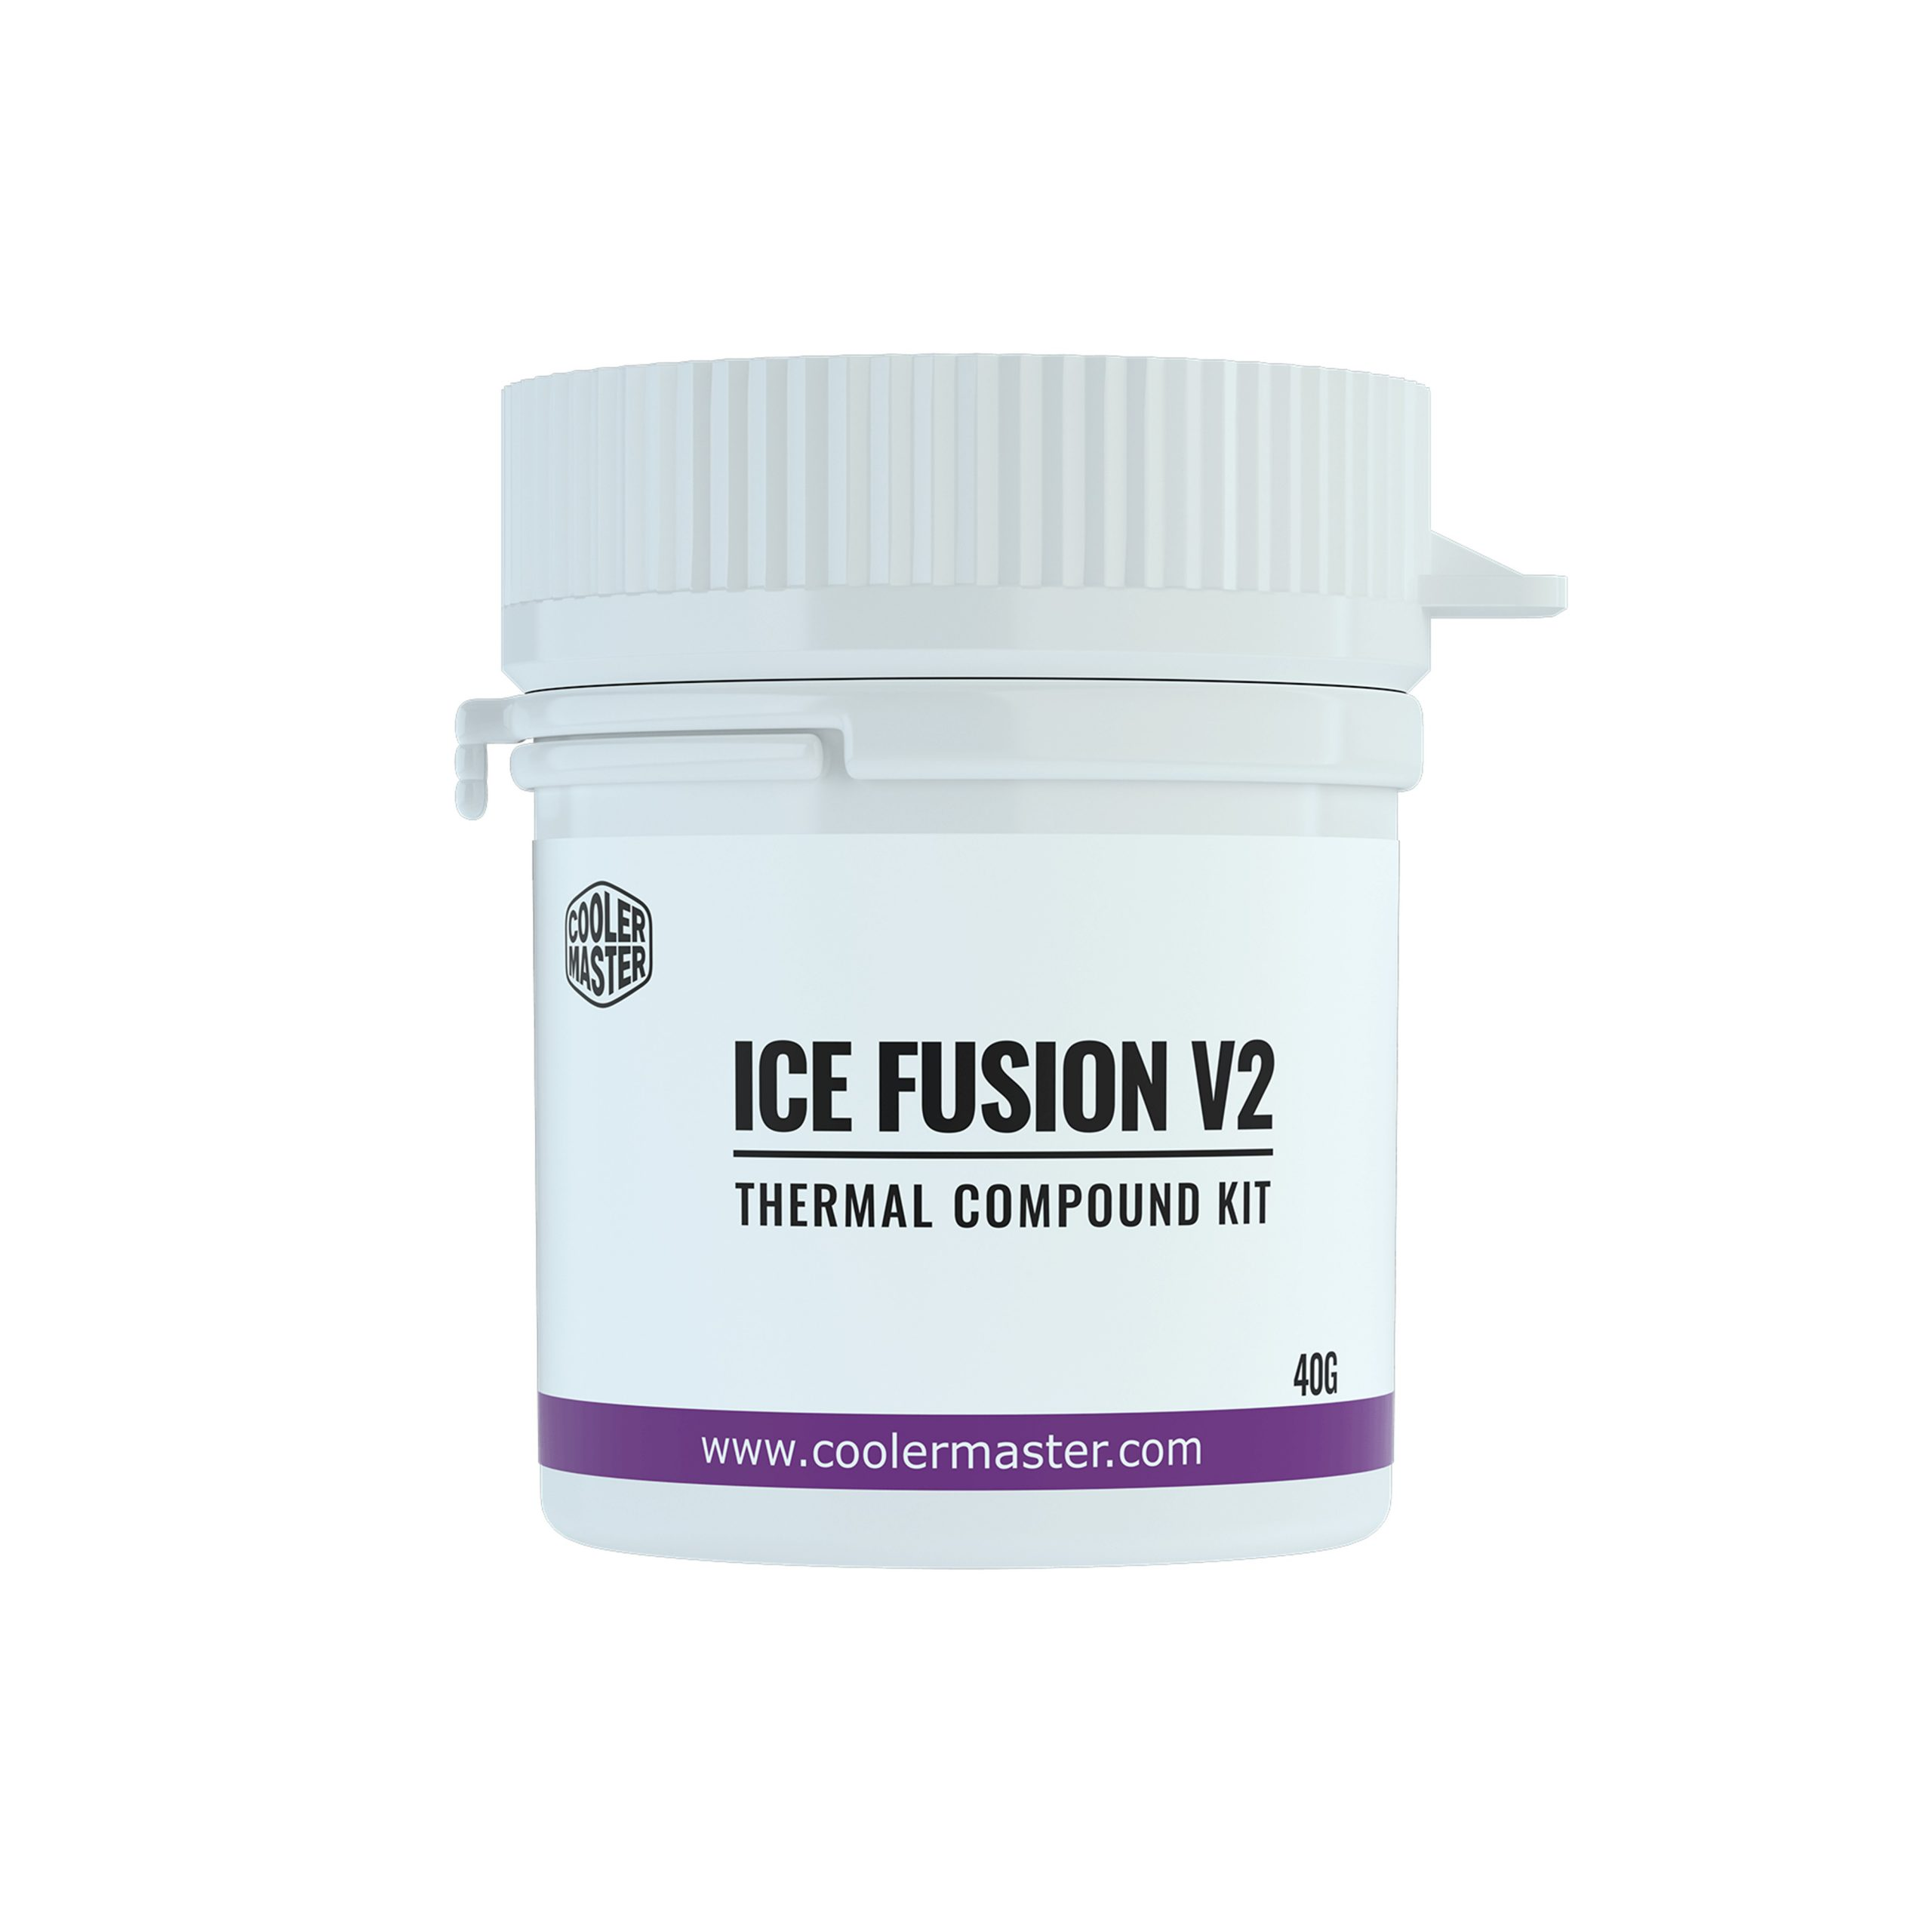 Keo Tản nhiệt Cooler Master ICE FUSION V2 40G (5W/M-K)